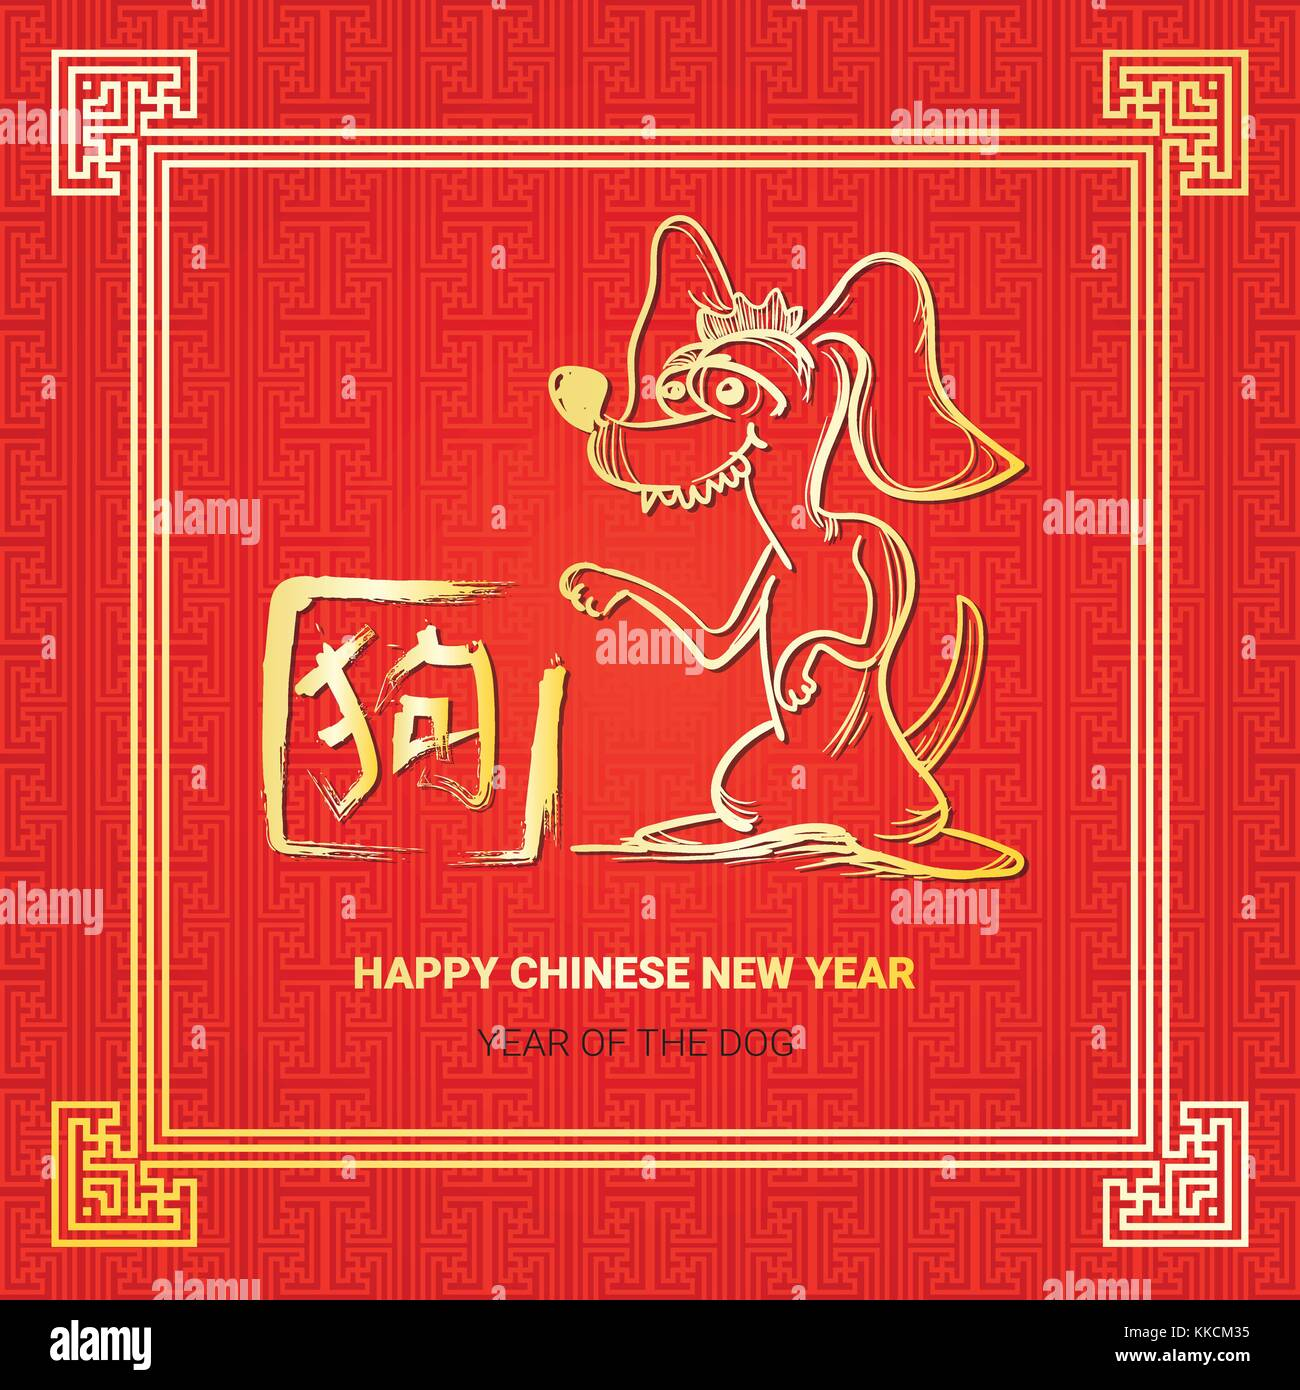 Chinese new year greeting card with dog image lunar symbol of 2018 chinese new year greeting card with dog image lunar symbol of 2018 m4hsunfo